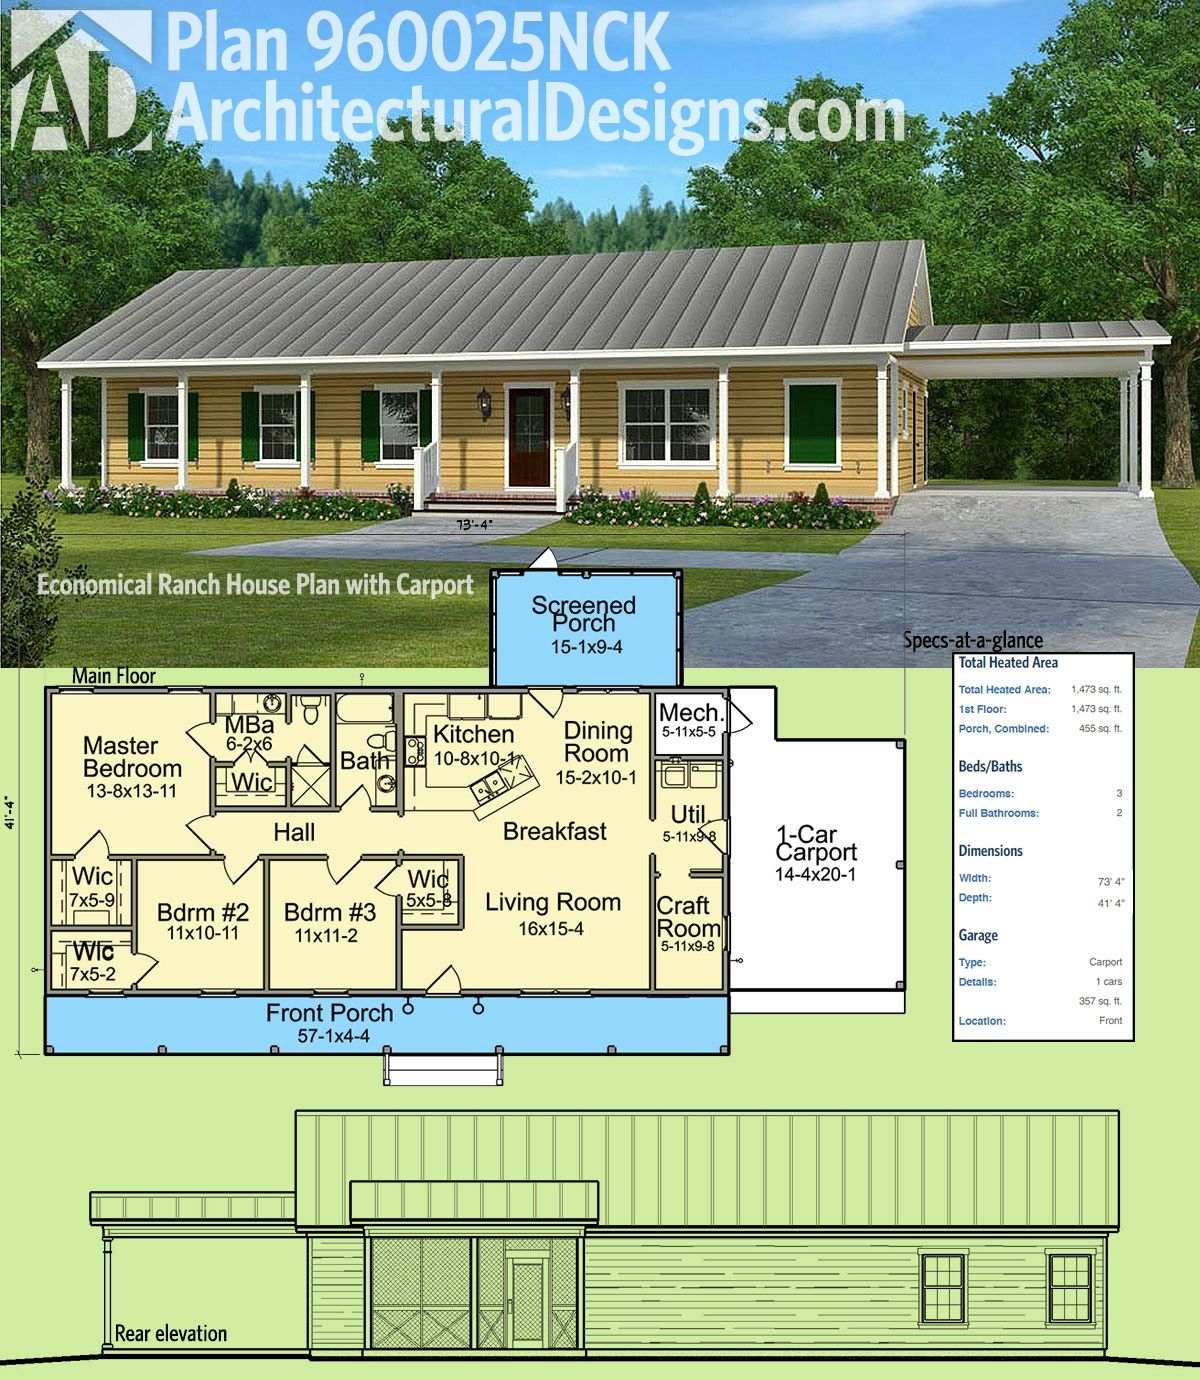 Plan 960025nck economical ranch house plan with carport for Economical homes